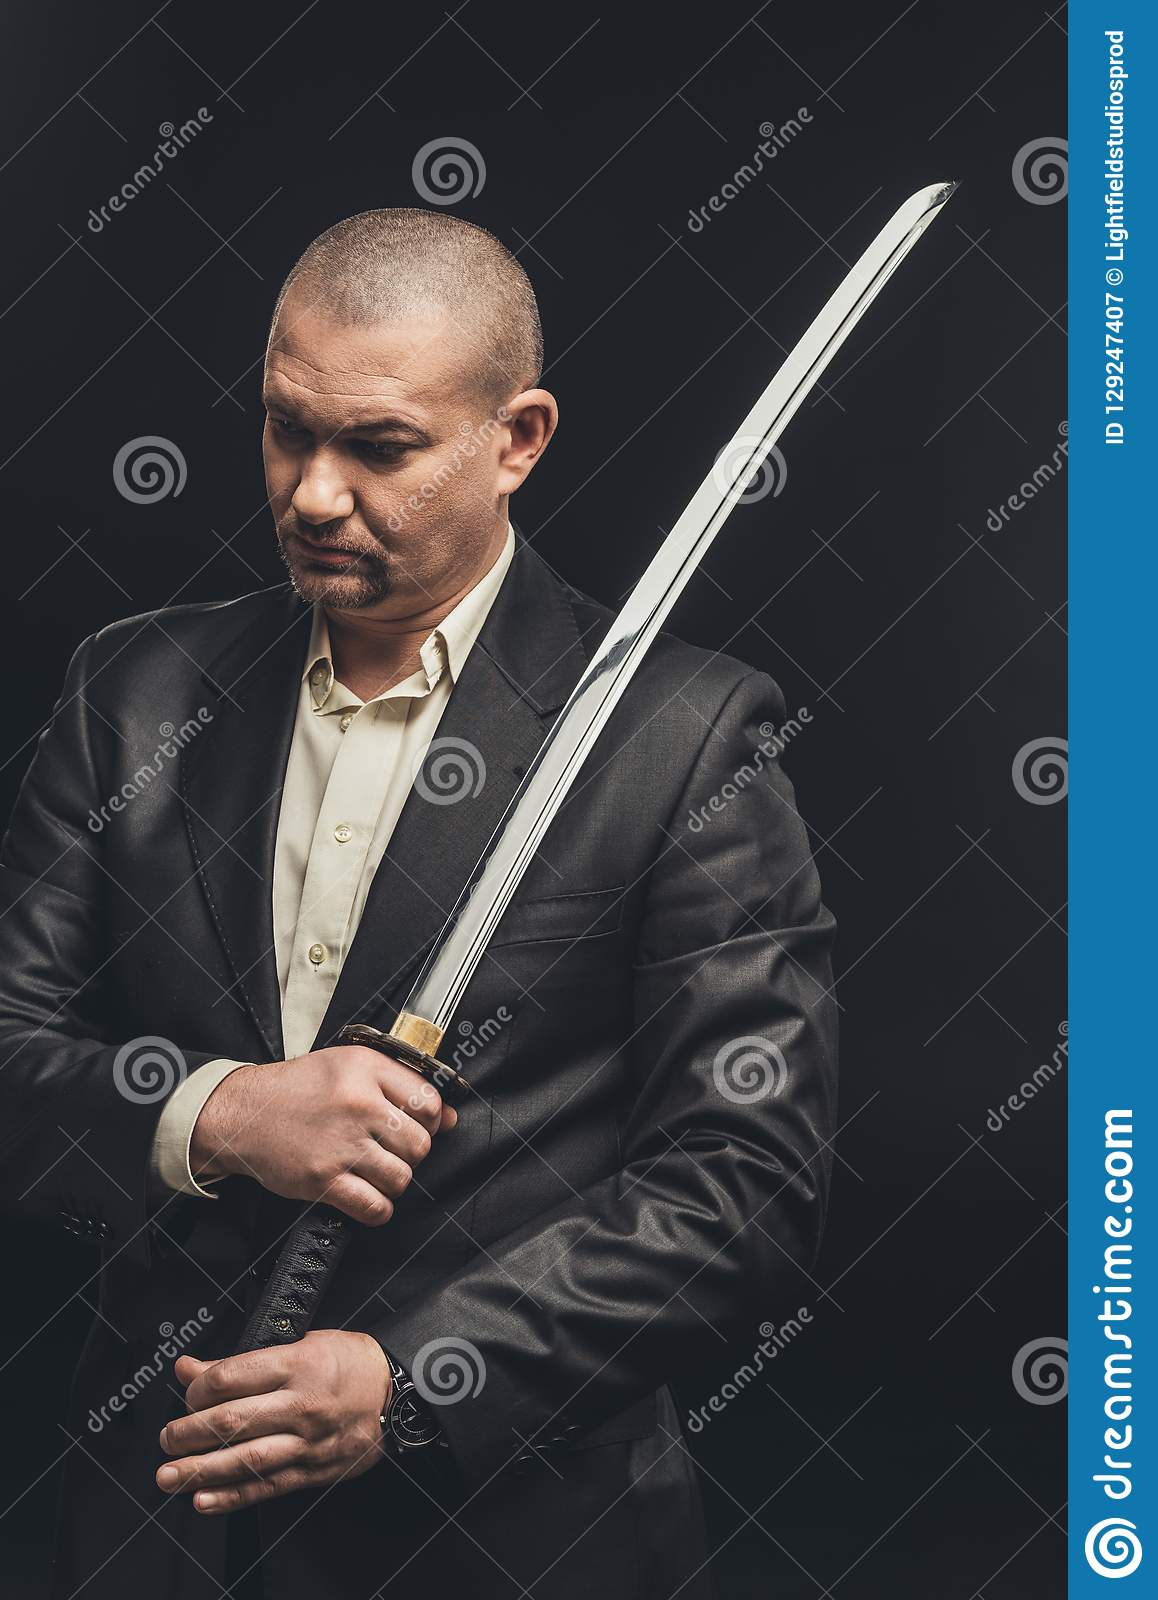 man in suit with katana sword